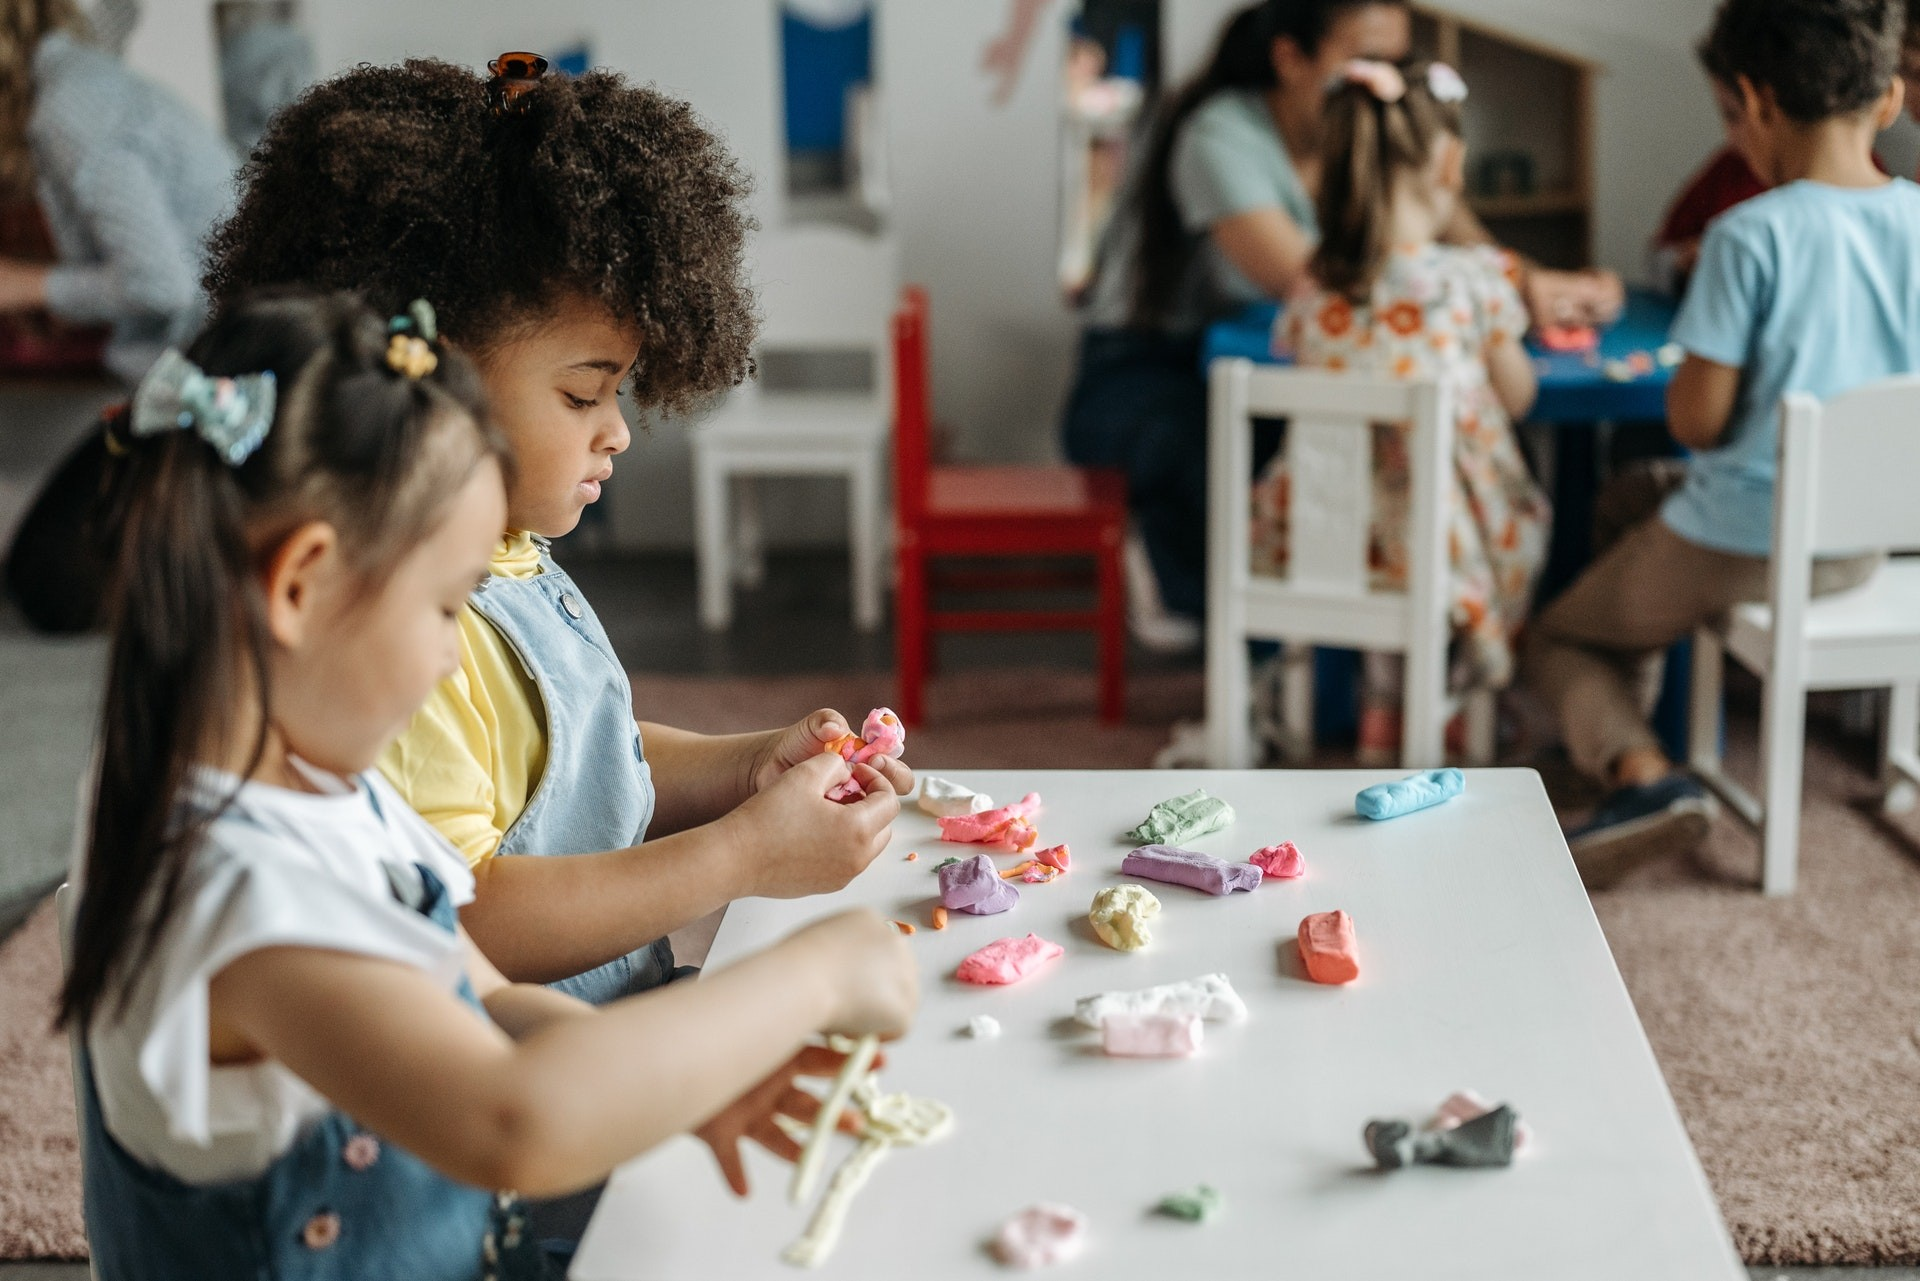 Two young girls play with playdough in a play-based learning classroom.